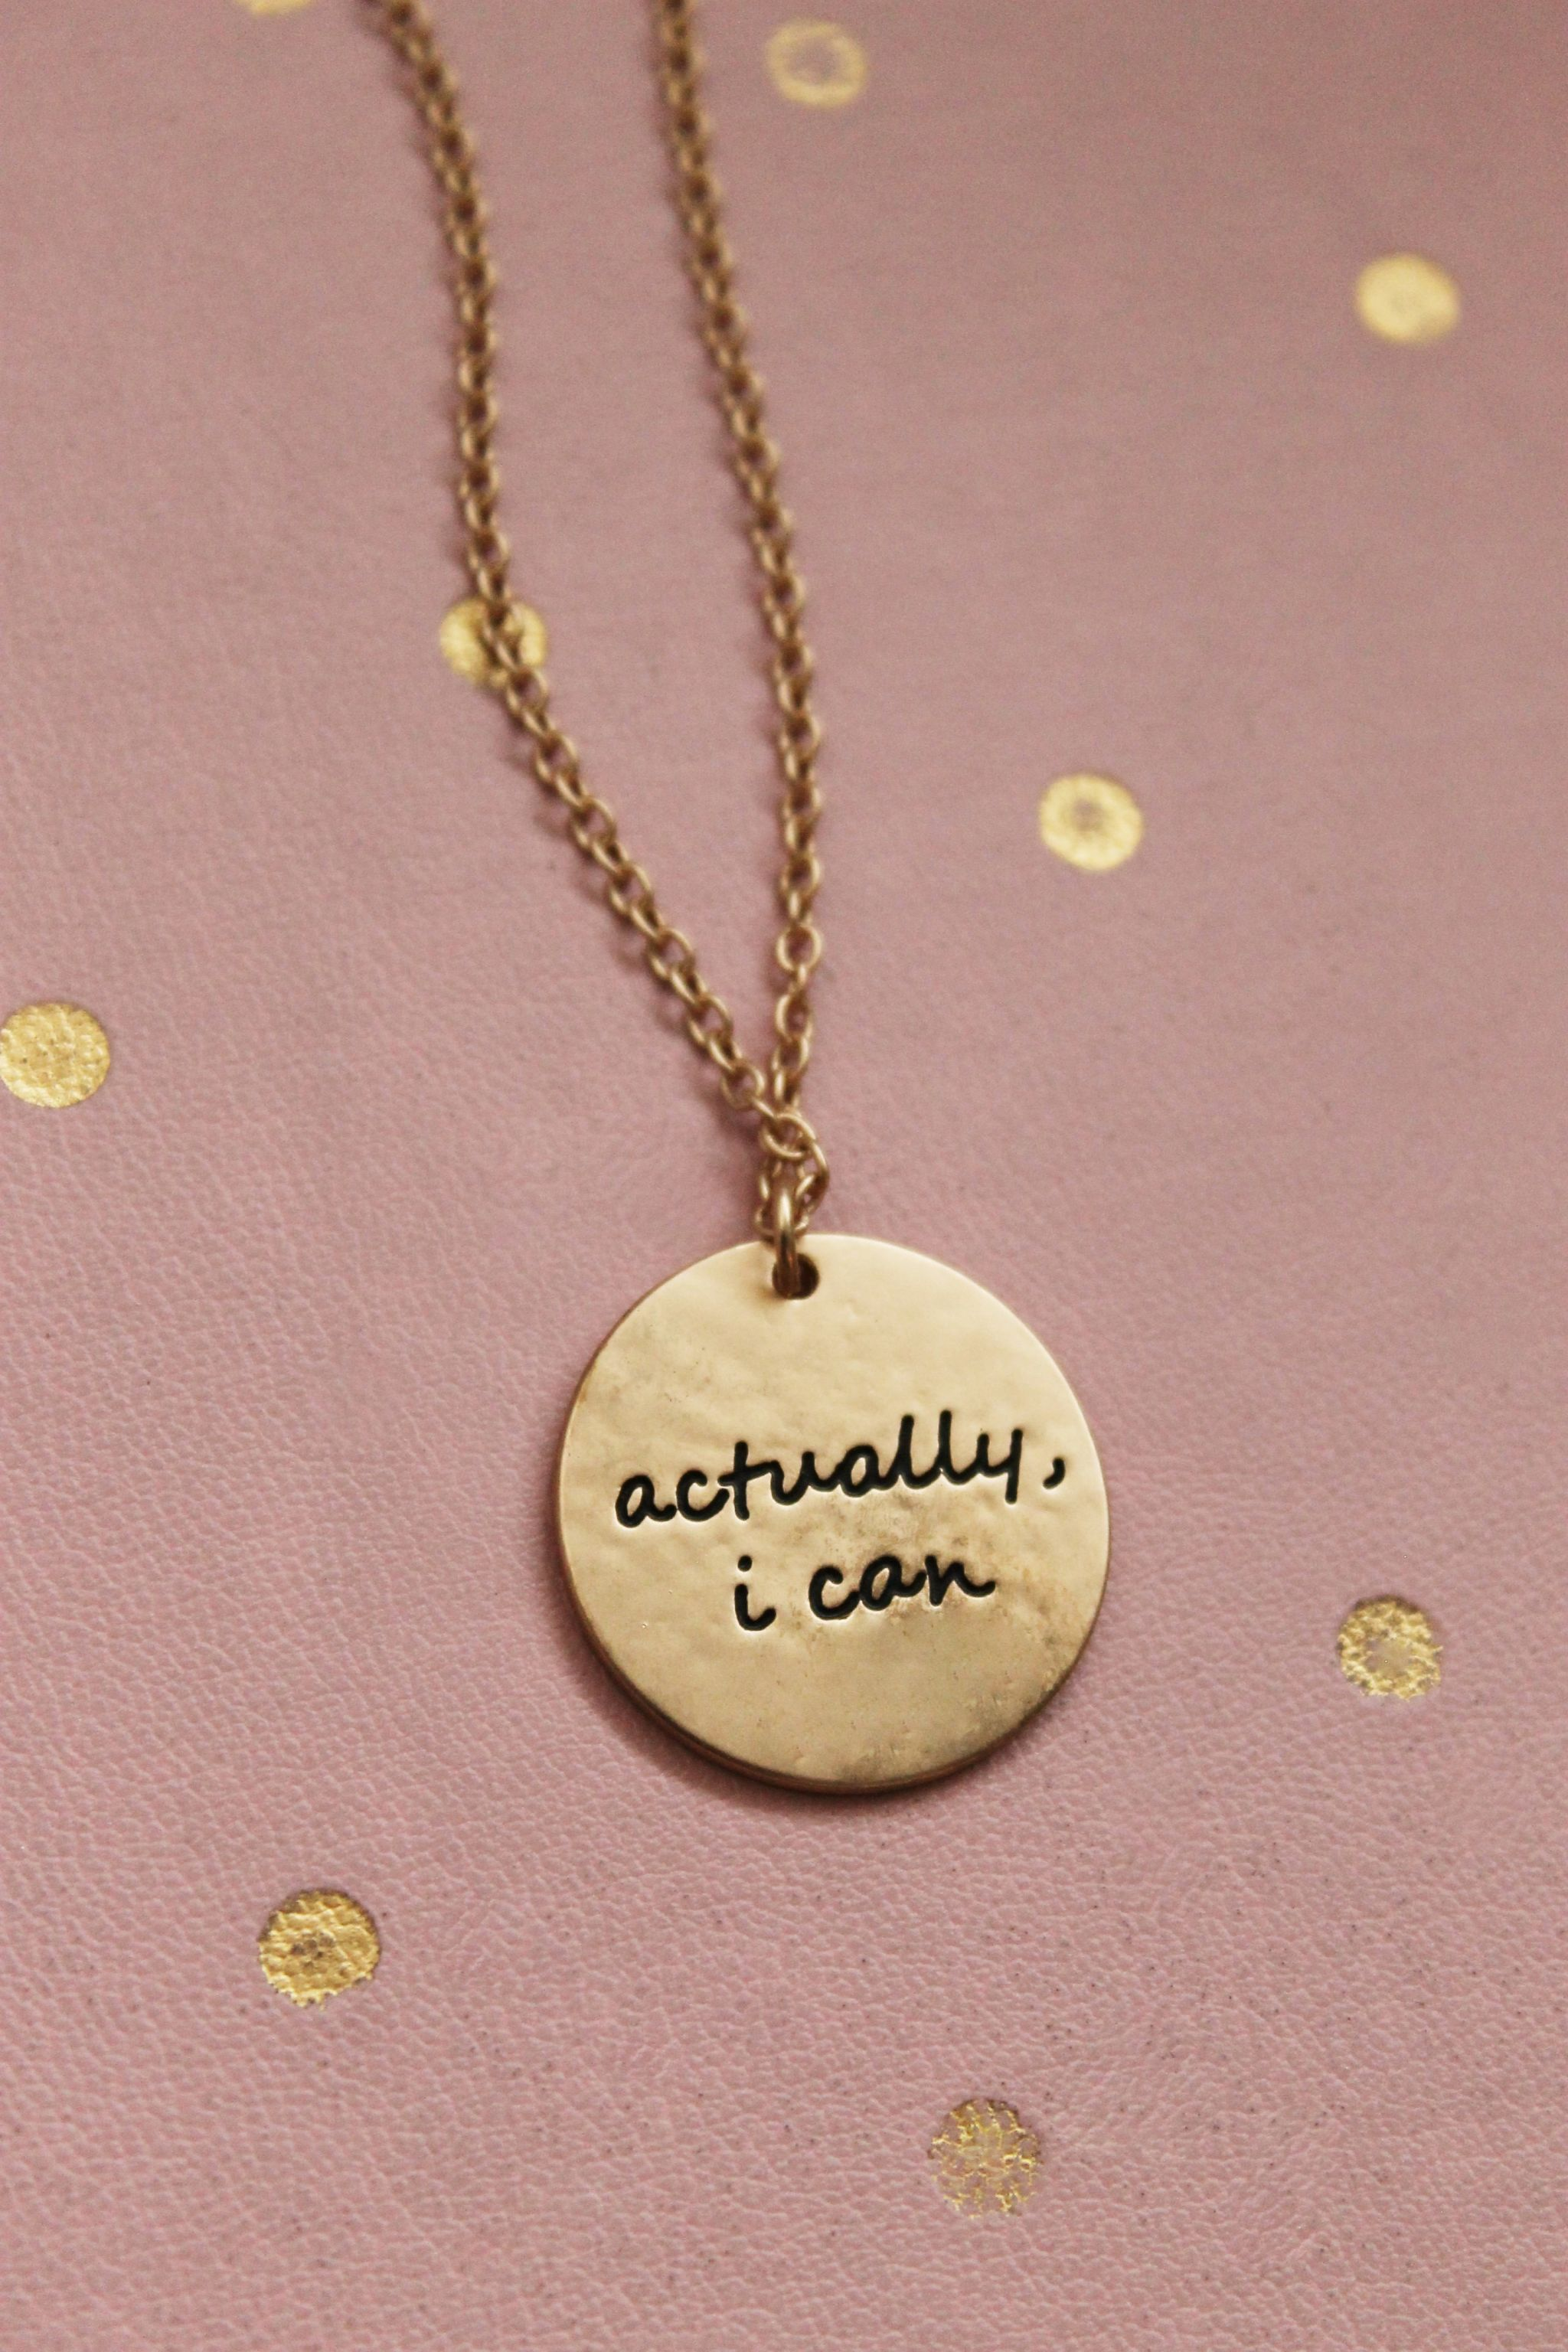 Actually, I Can Necklace from Cents of Style